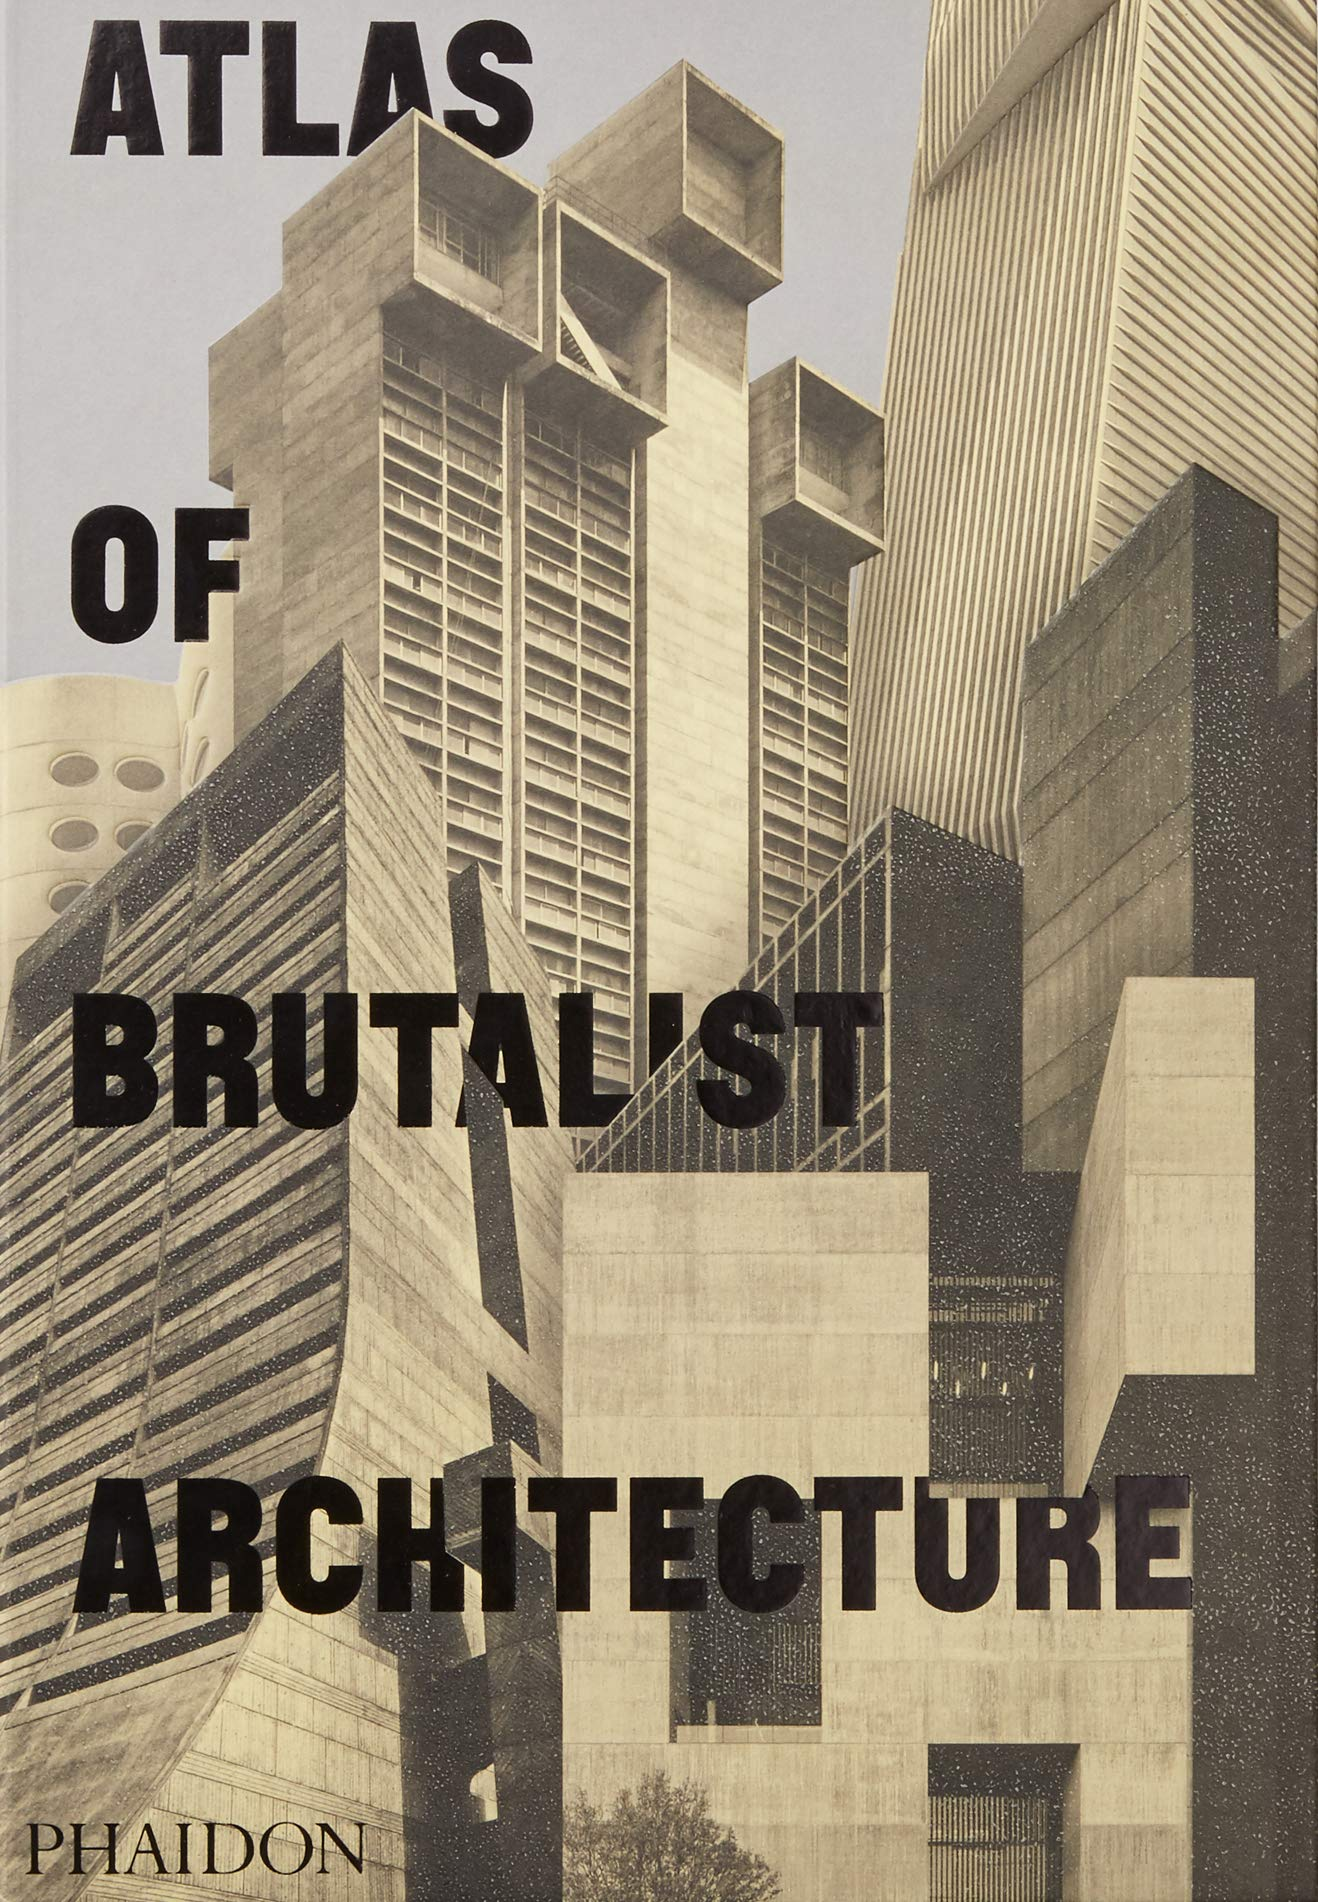 Atlas of Brutalist Architecture: The New York Times Best Art Book of 2018